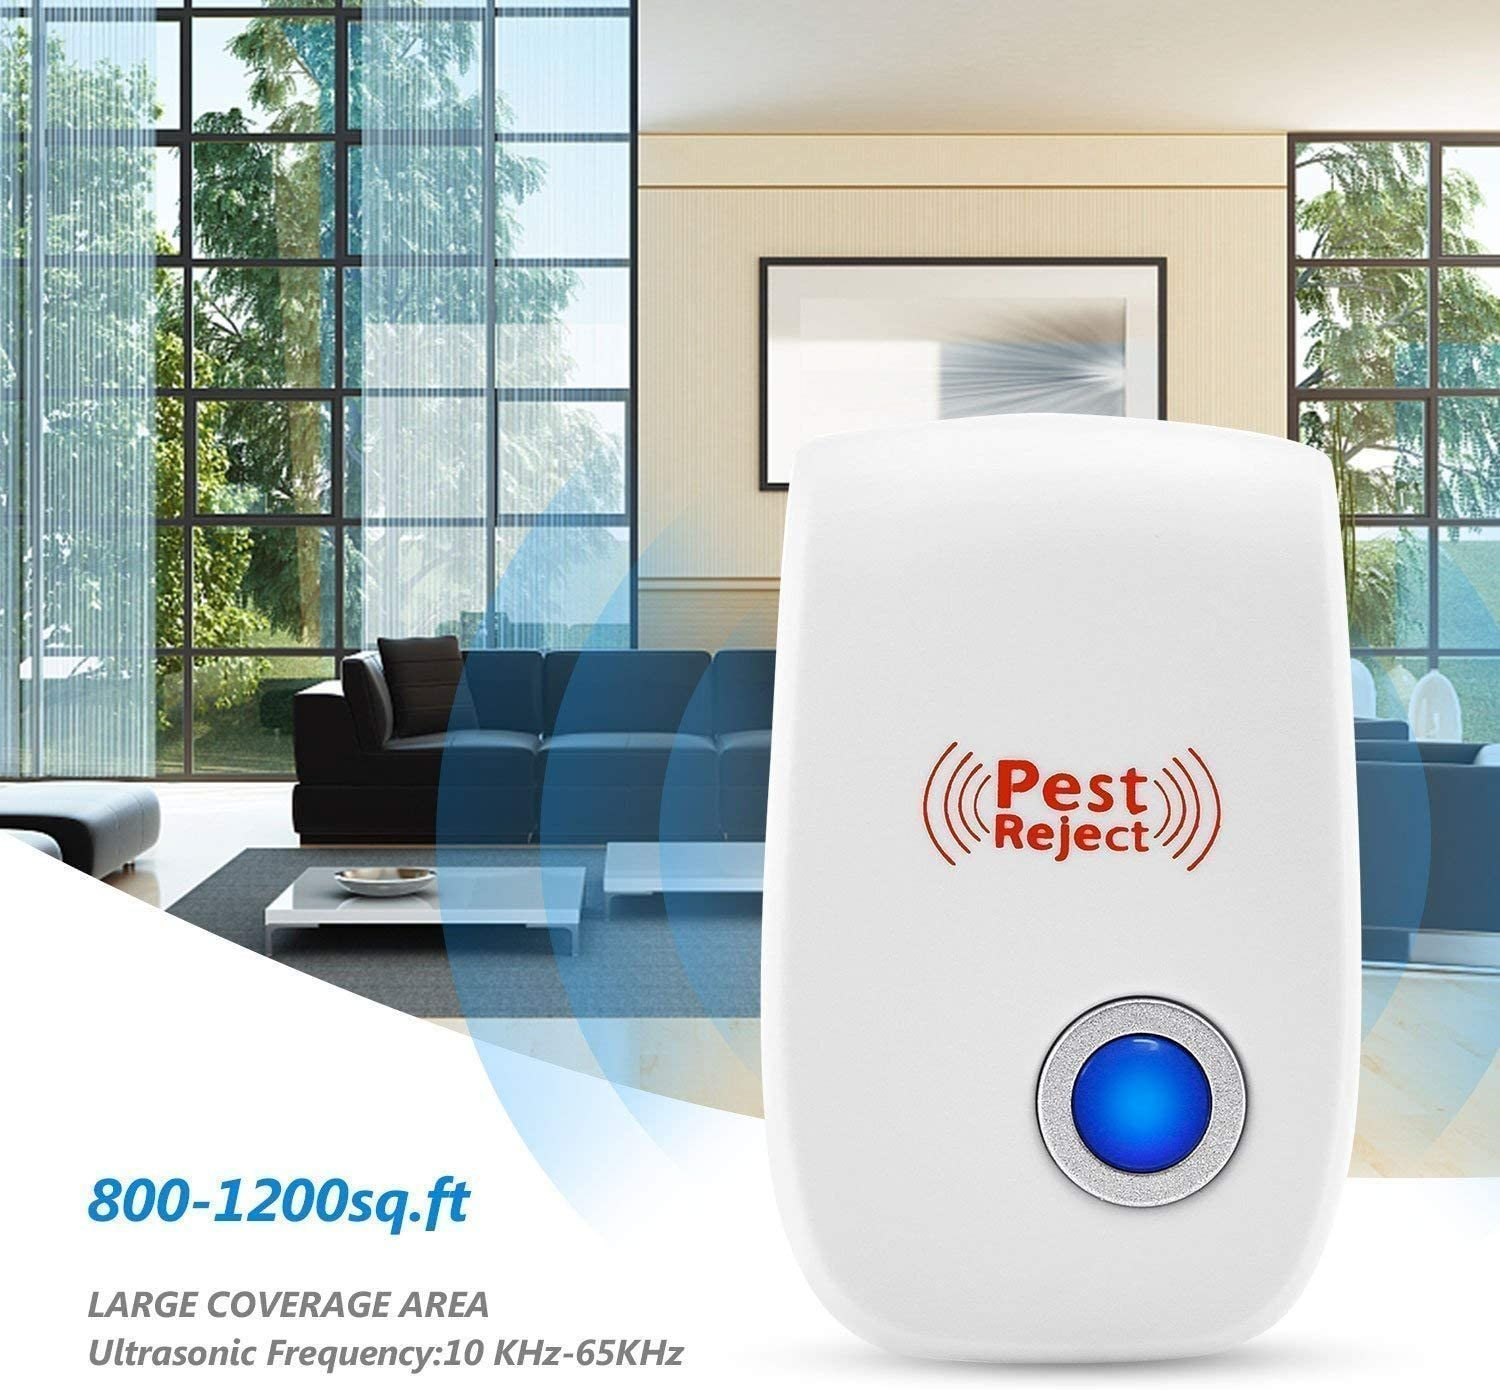 2020 Upgrated Pest Control Ultrasonic Repellent(50%OFF TODAY)